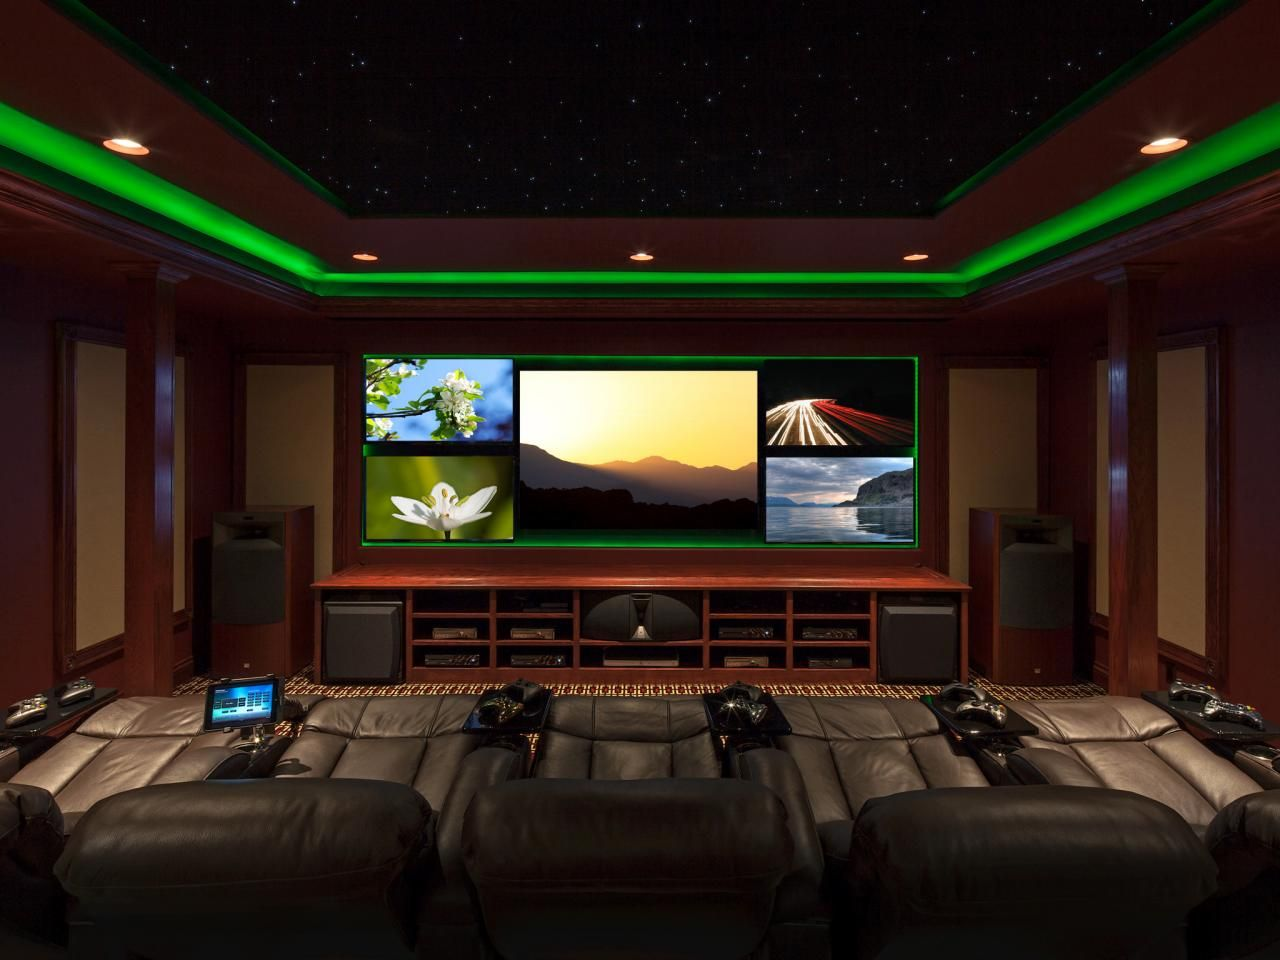 47 epic video game room decoration ideas for 2017 game rooms gaming and room